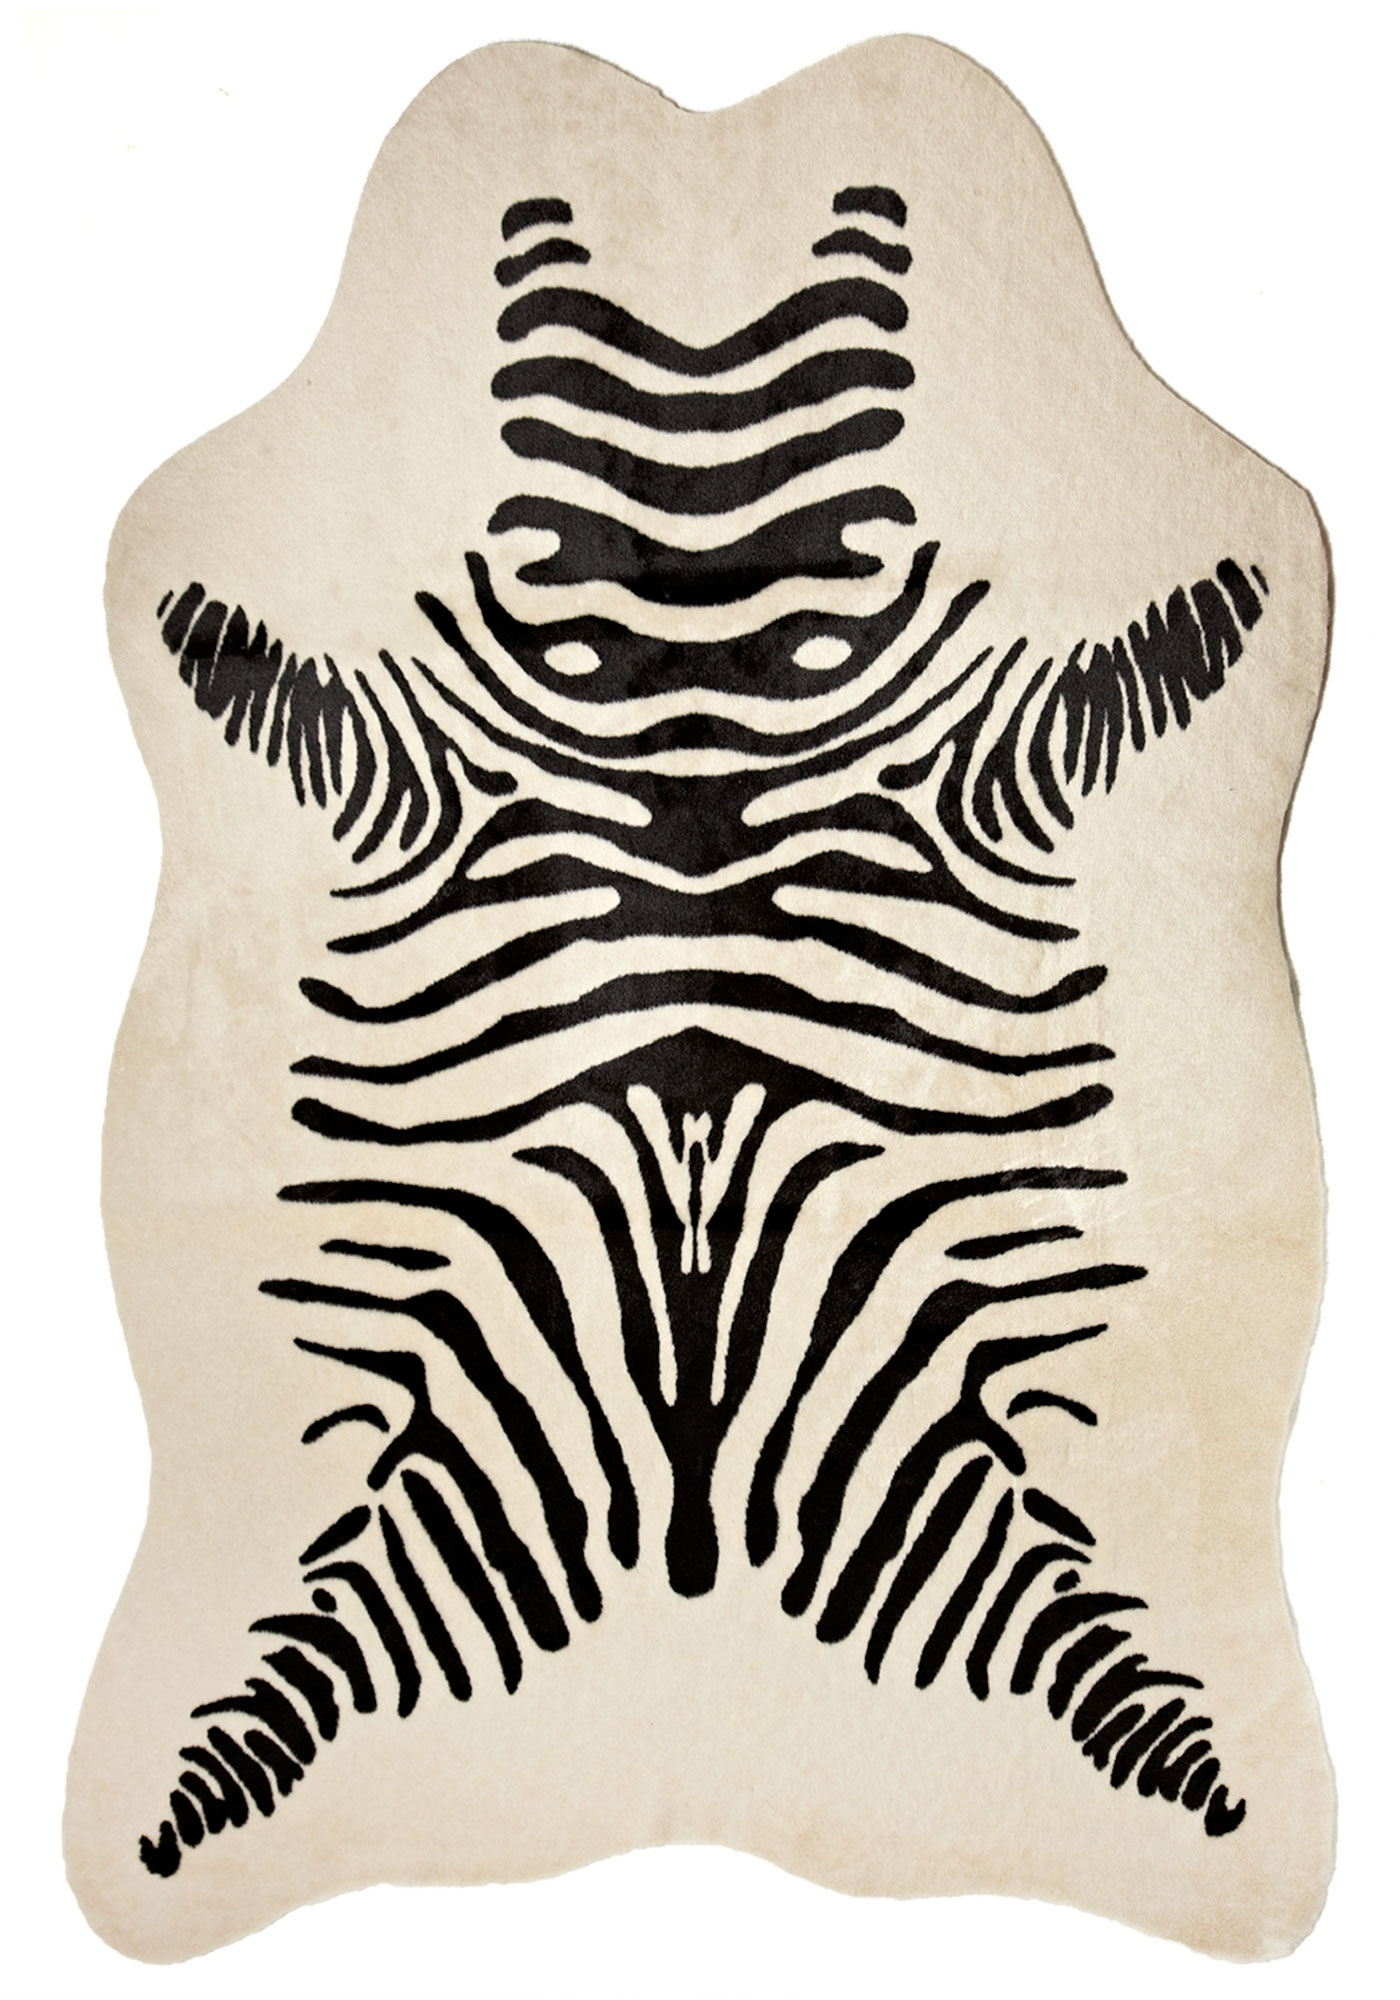 Faux Zebra Skin Rug Ideas Home Furniture Ideas With Zebra Skin Rugs (Photo 5 of 15)